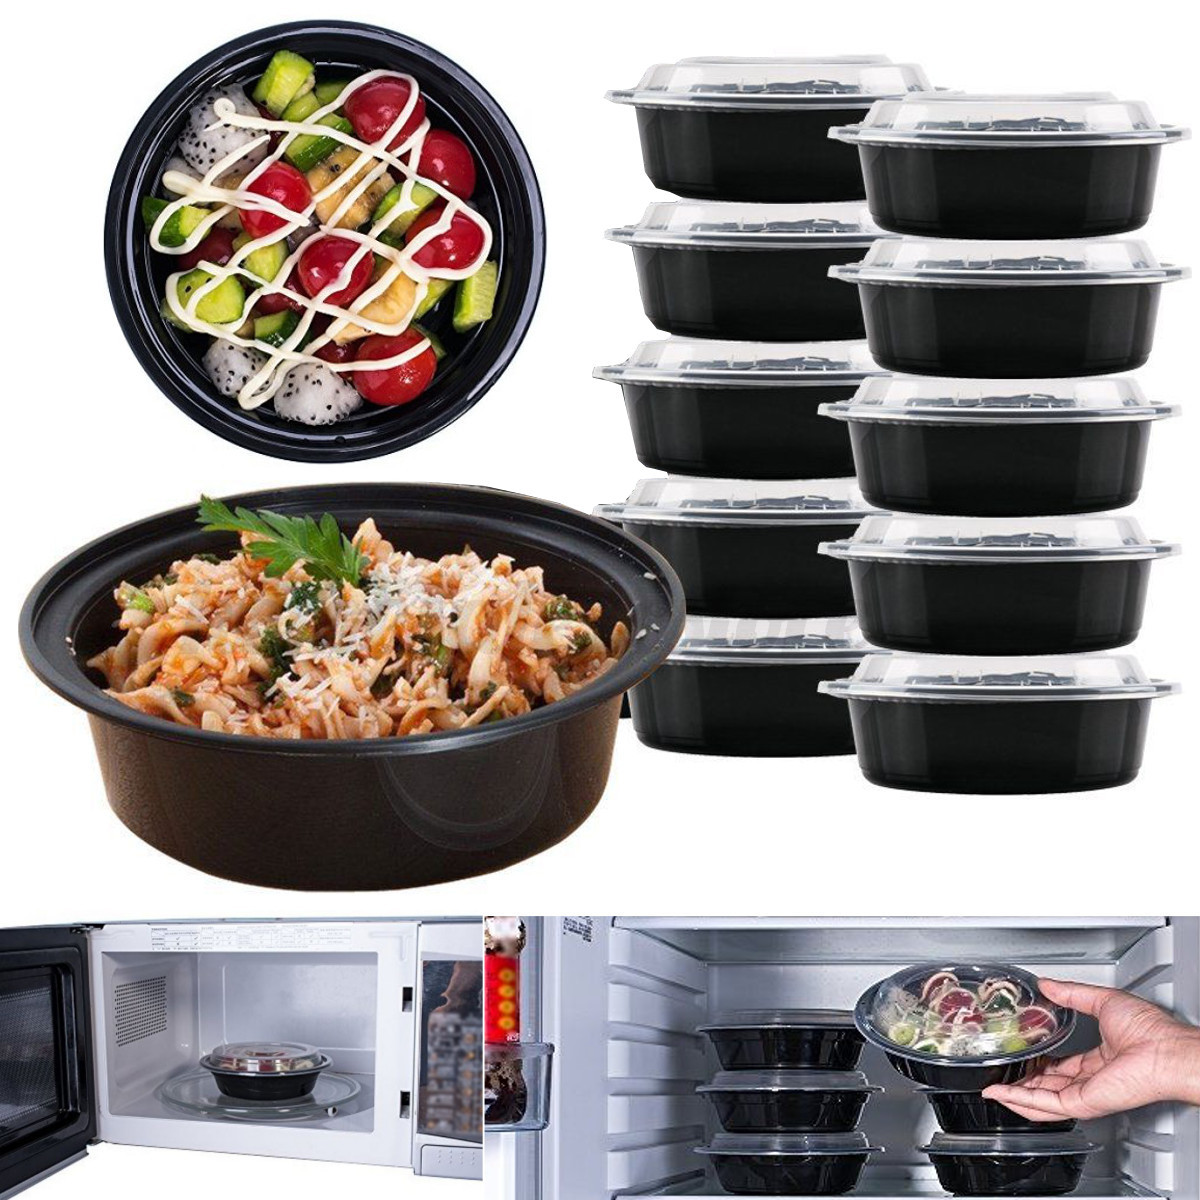 16oz meal prep 6 round food containers with lids microwavable plastic bpa free ebay. Black Bedroom Furniture Sets. Home Design Ideas